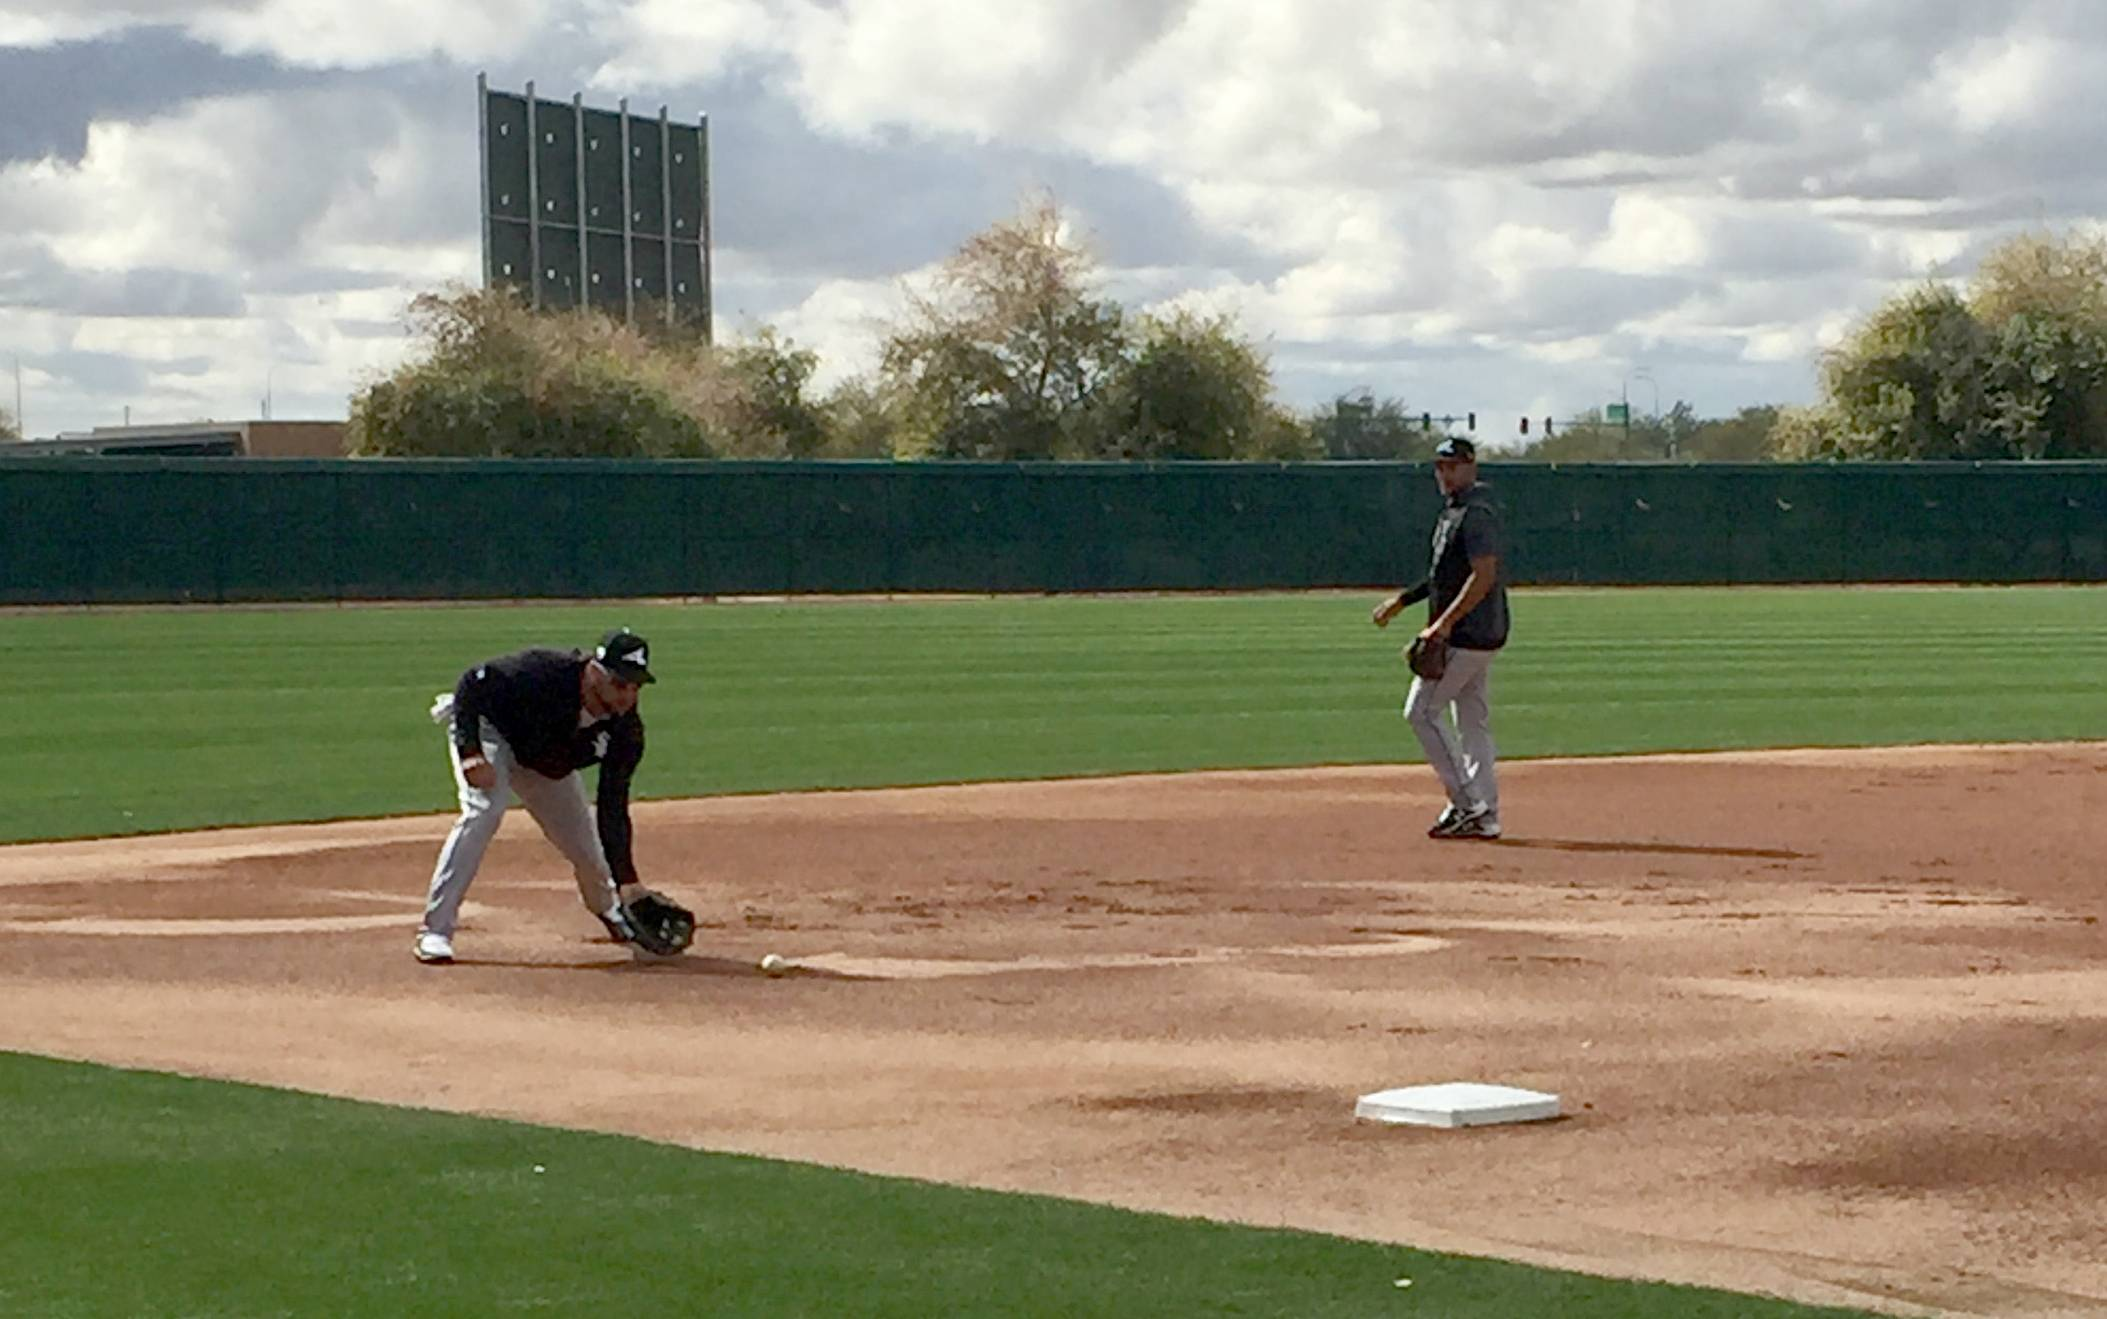 Yoan Moncada taking groundballs at third base and batting practice Monday.